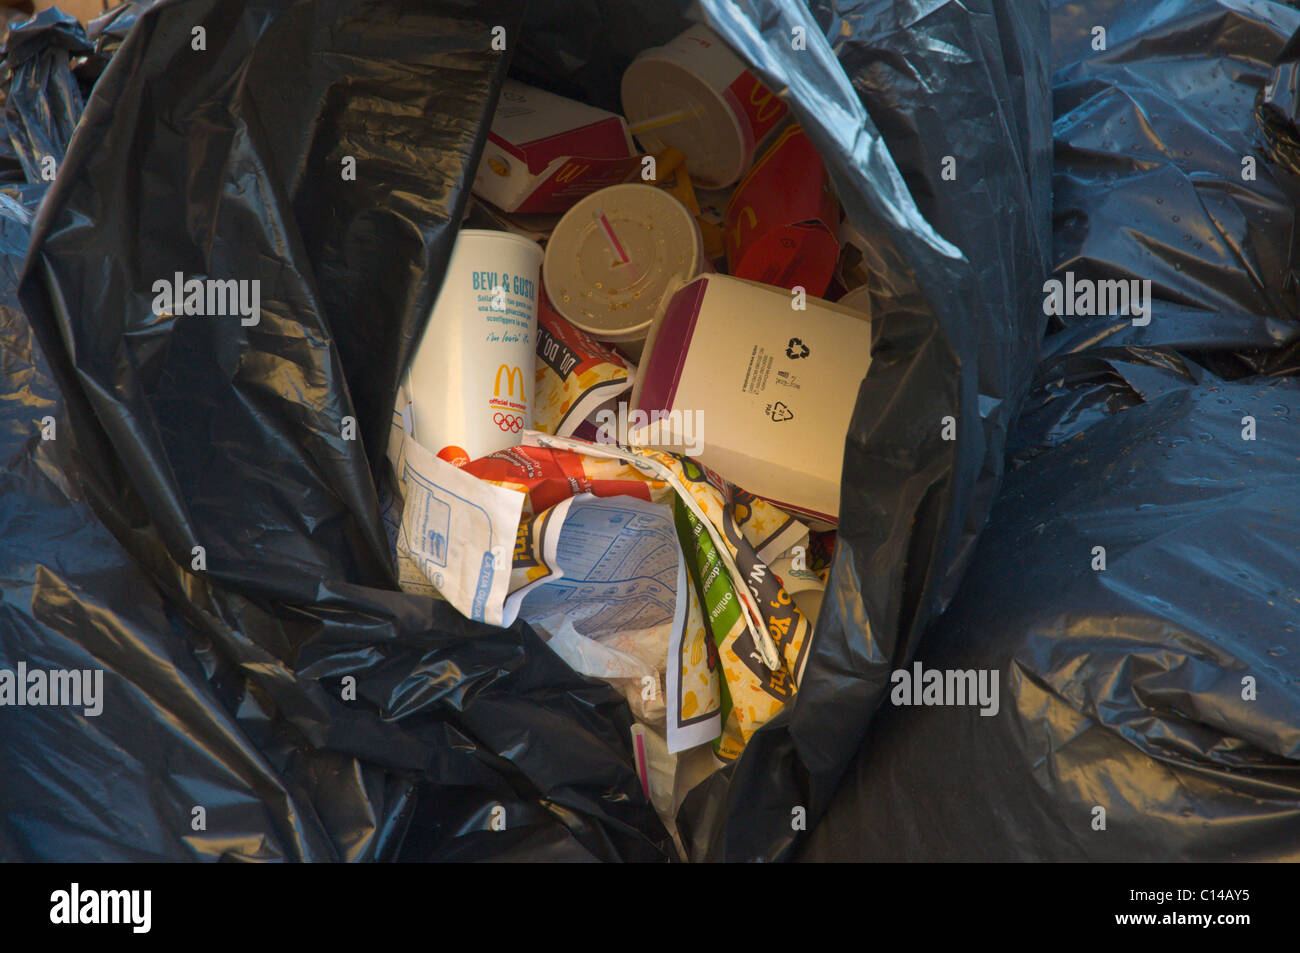 Rubbish bin full of wrappings and waste from fast food restaurants Naples Campania Italy Europe Stock Photo